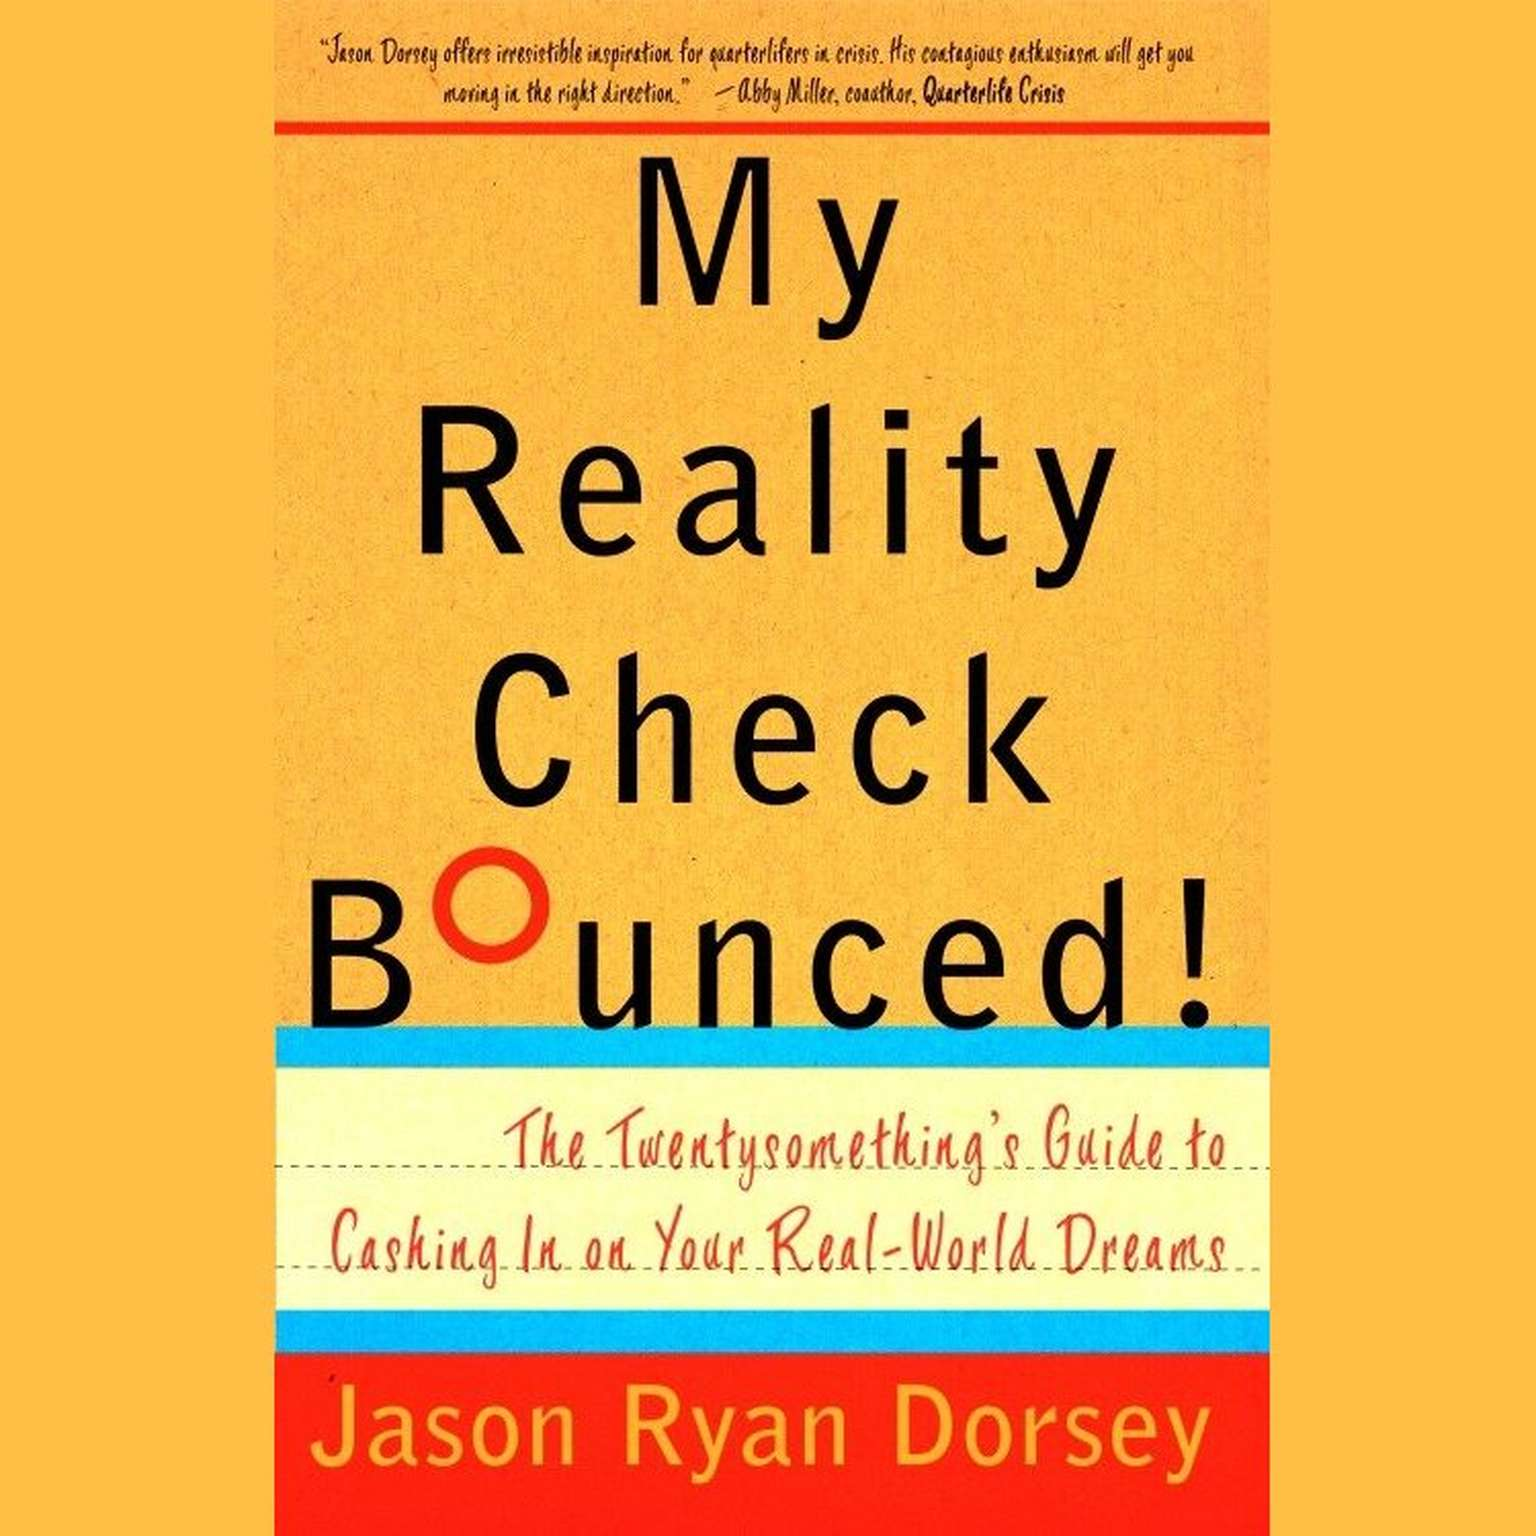 Printable My Reality Check Bounced!: The Gen-Y Guide to Cashing In On Your Real-World Dreams Audiobook Cover Art